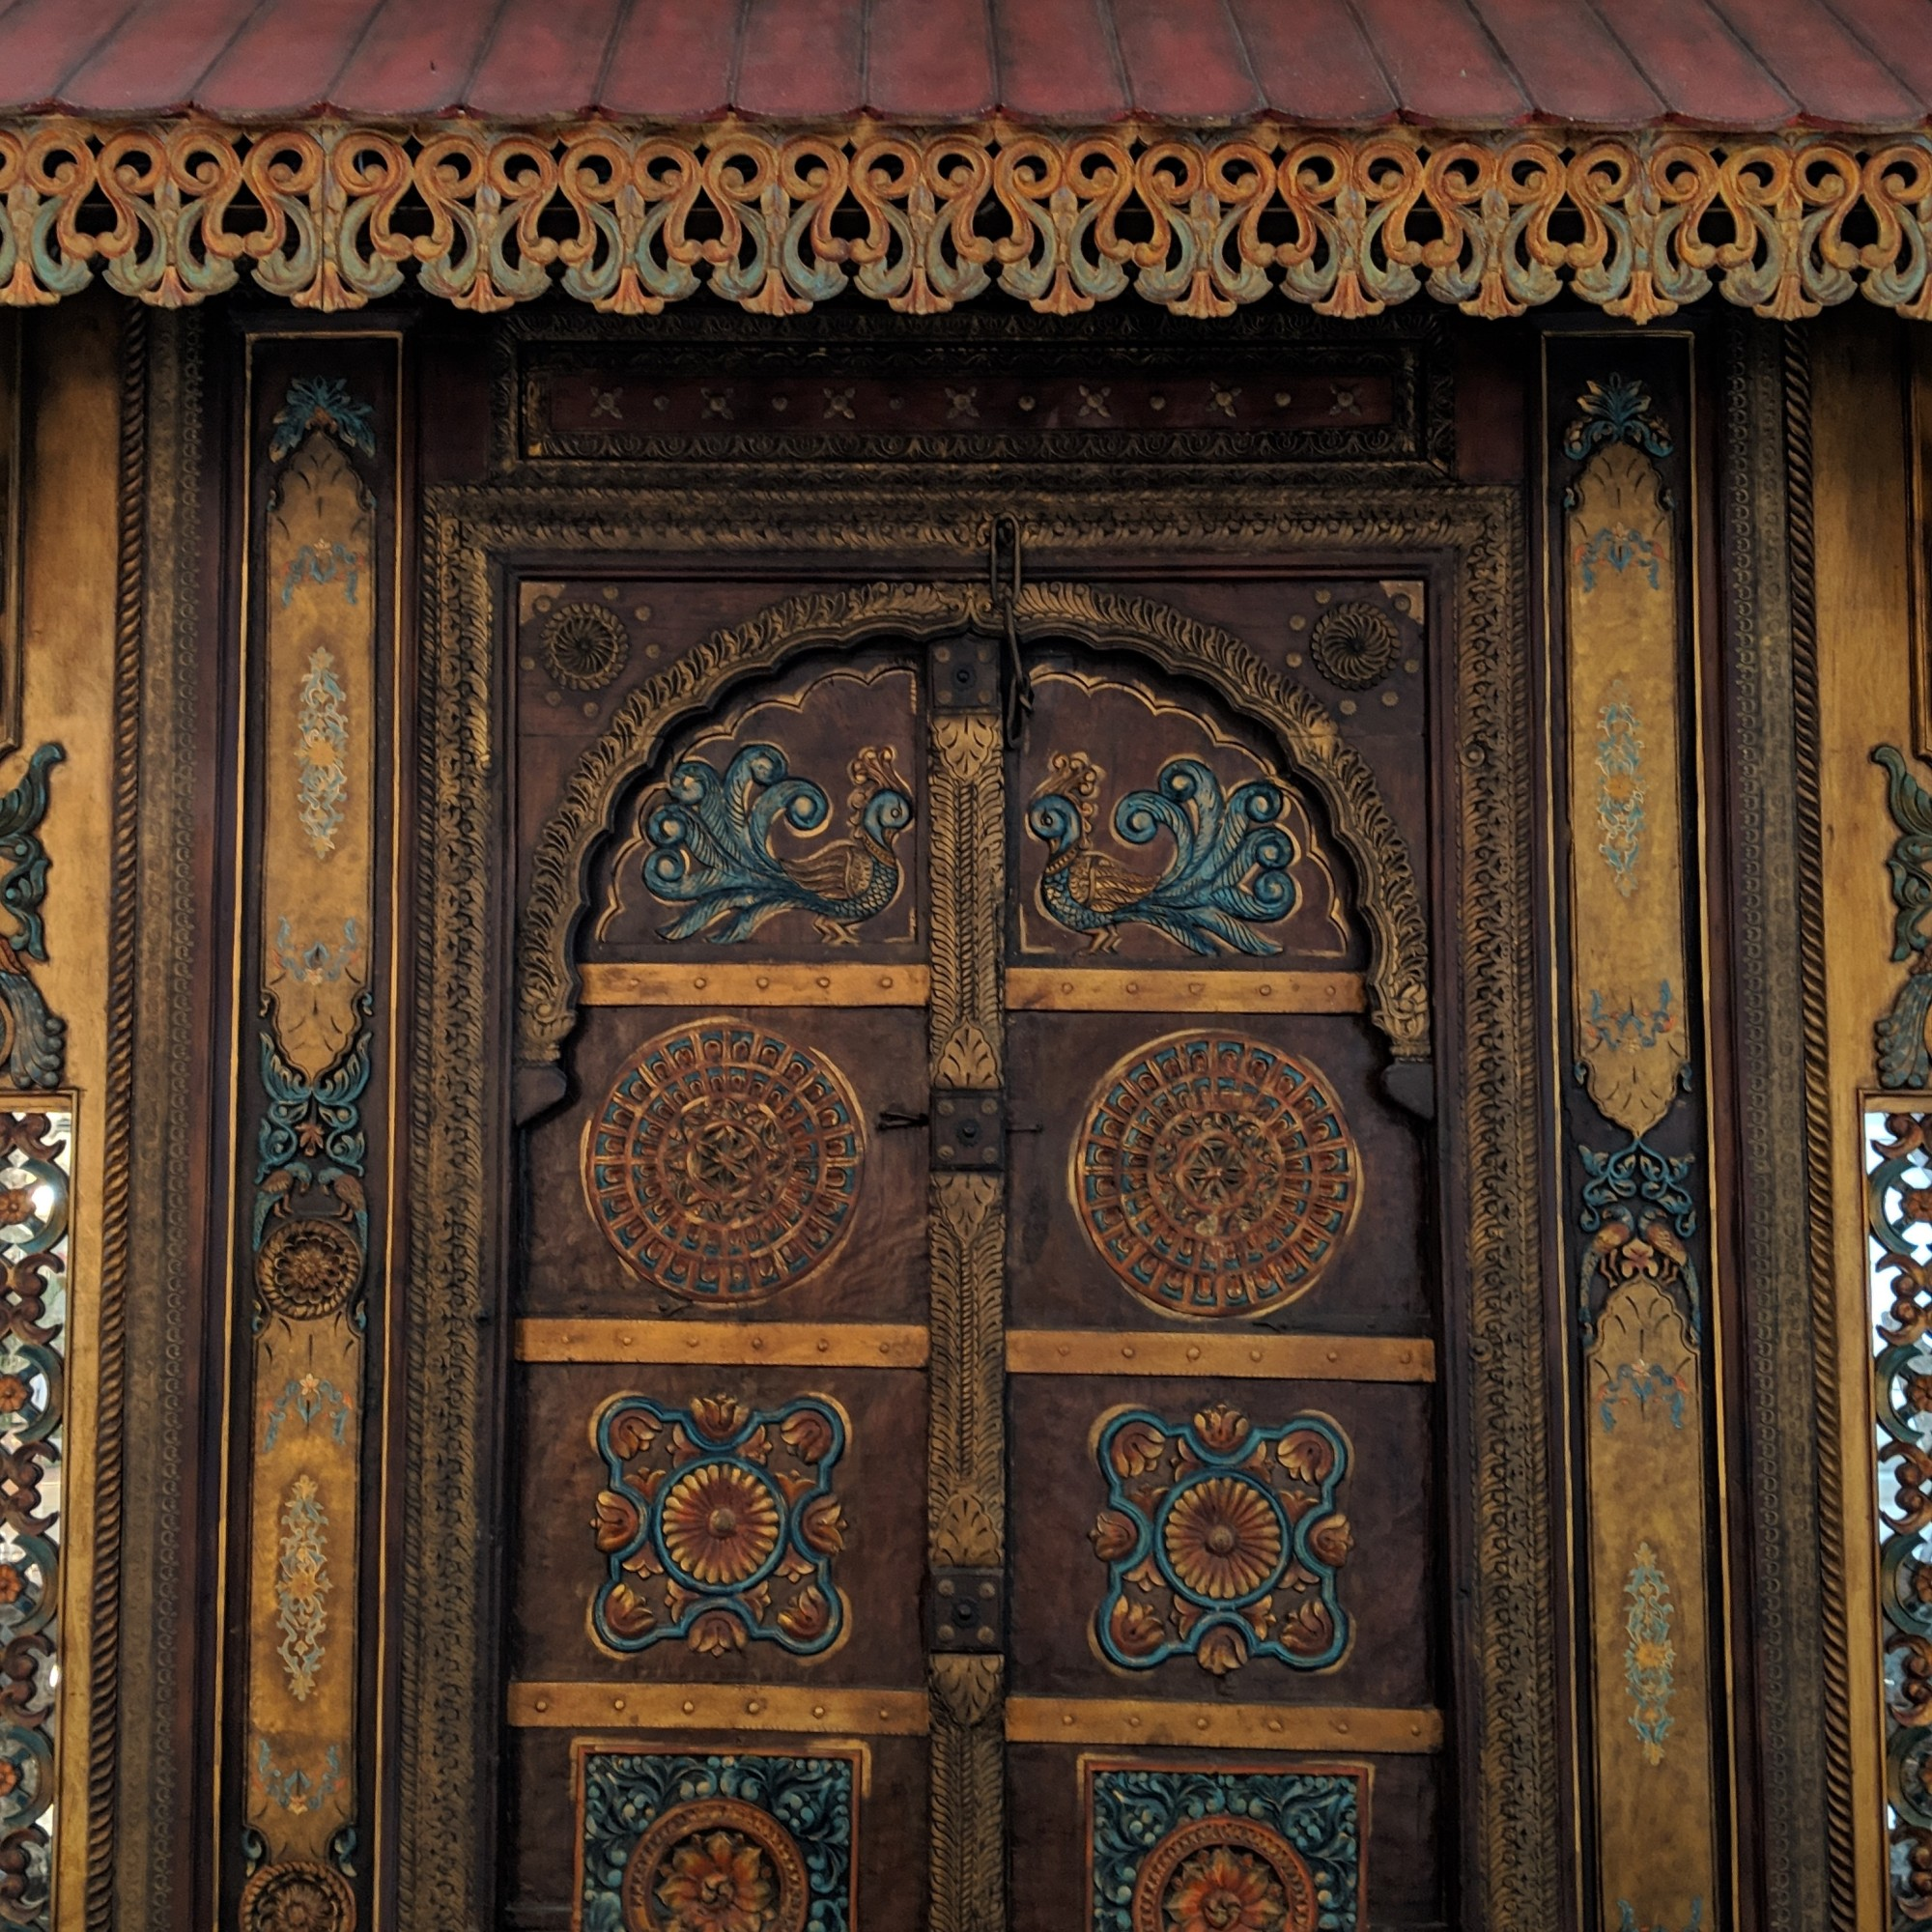 100 year-old door in the lobby